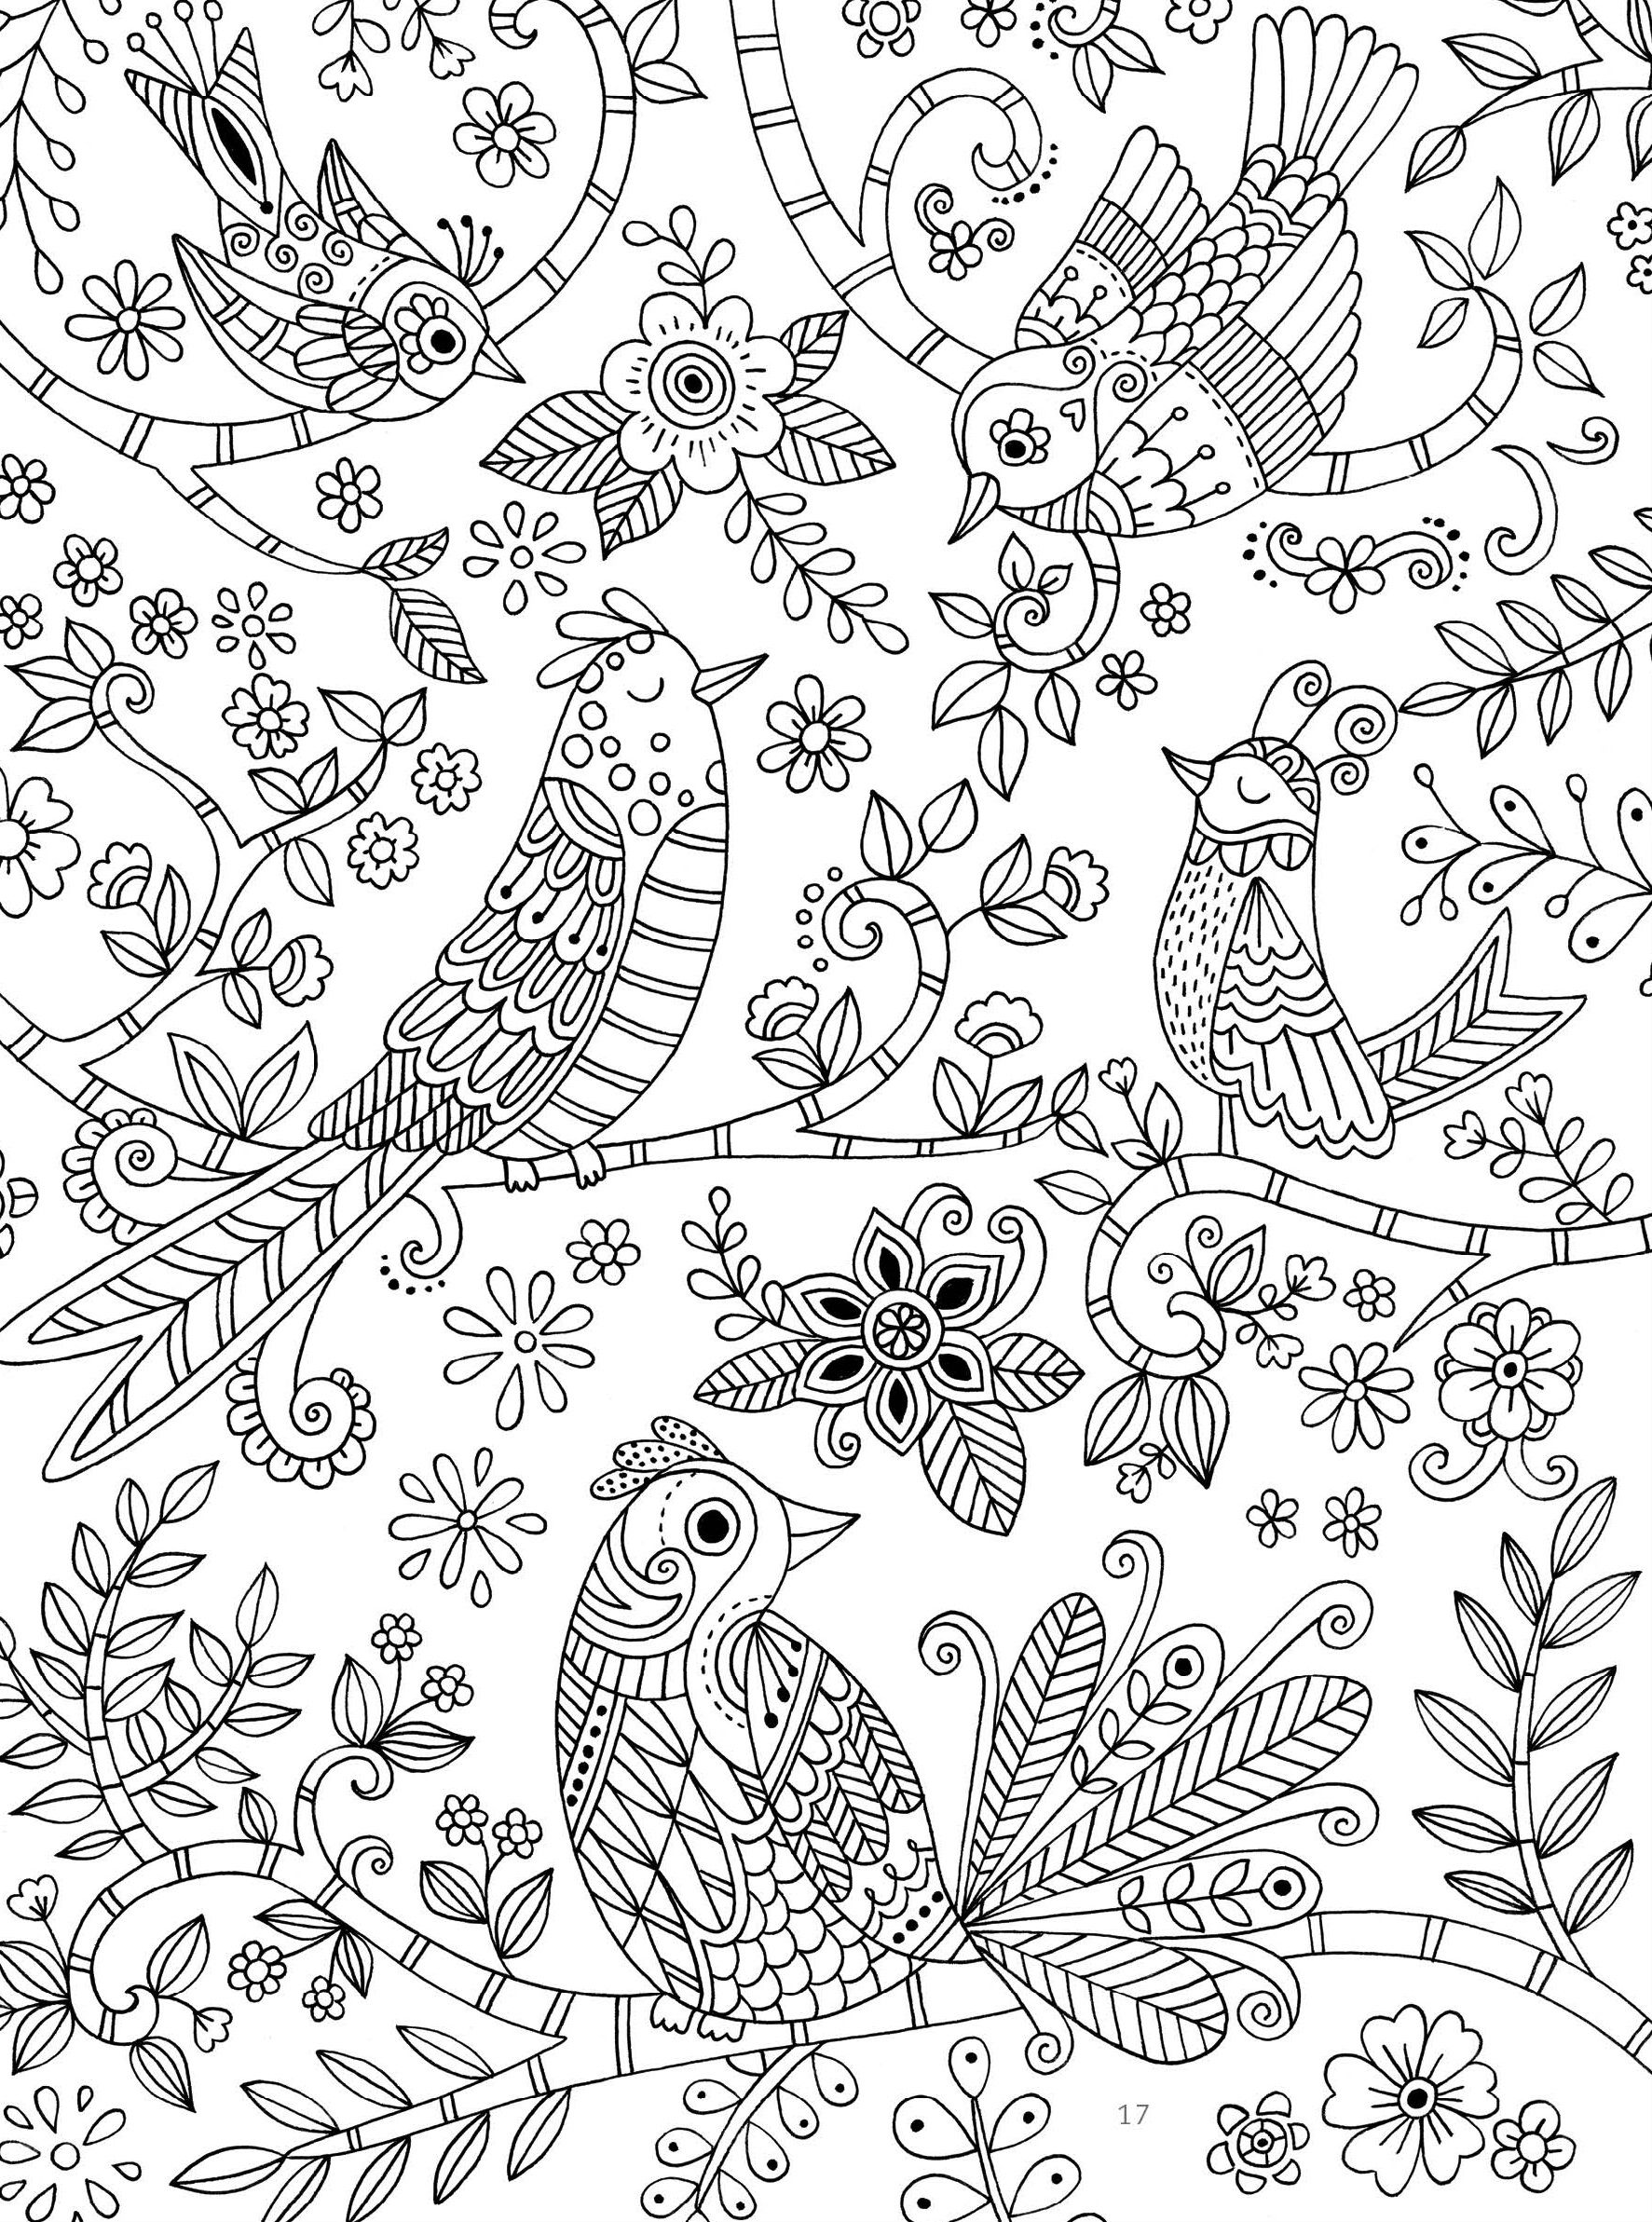 You are more valuable sparrows gods sight you, love birds coloring pages